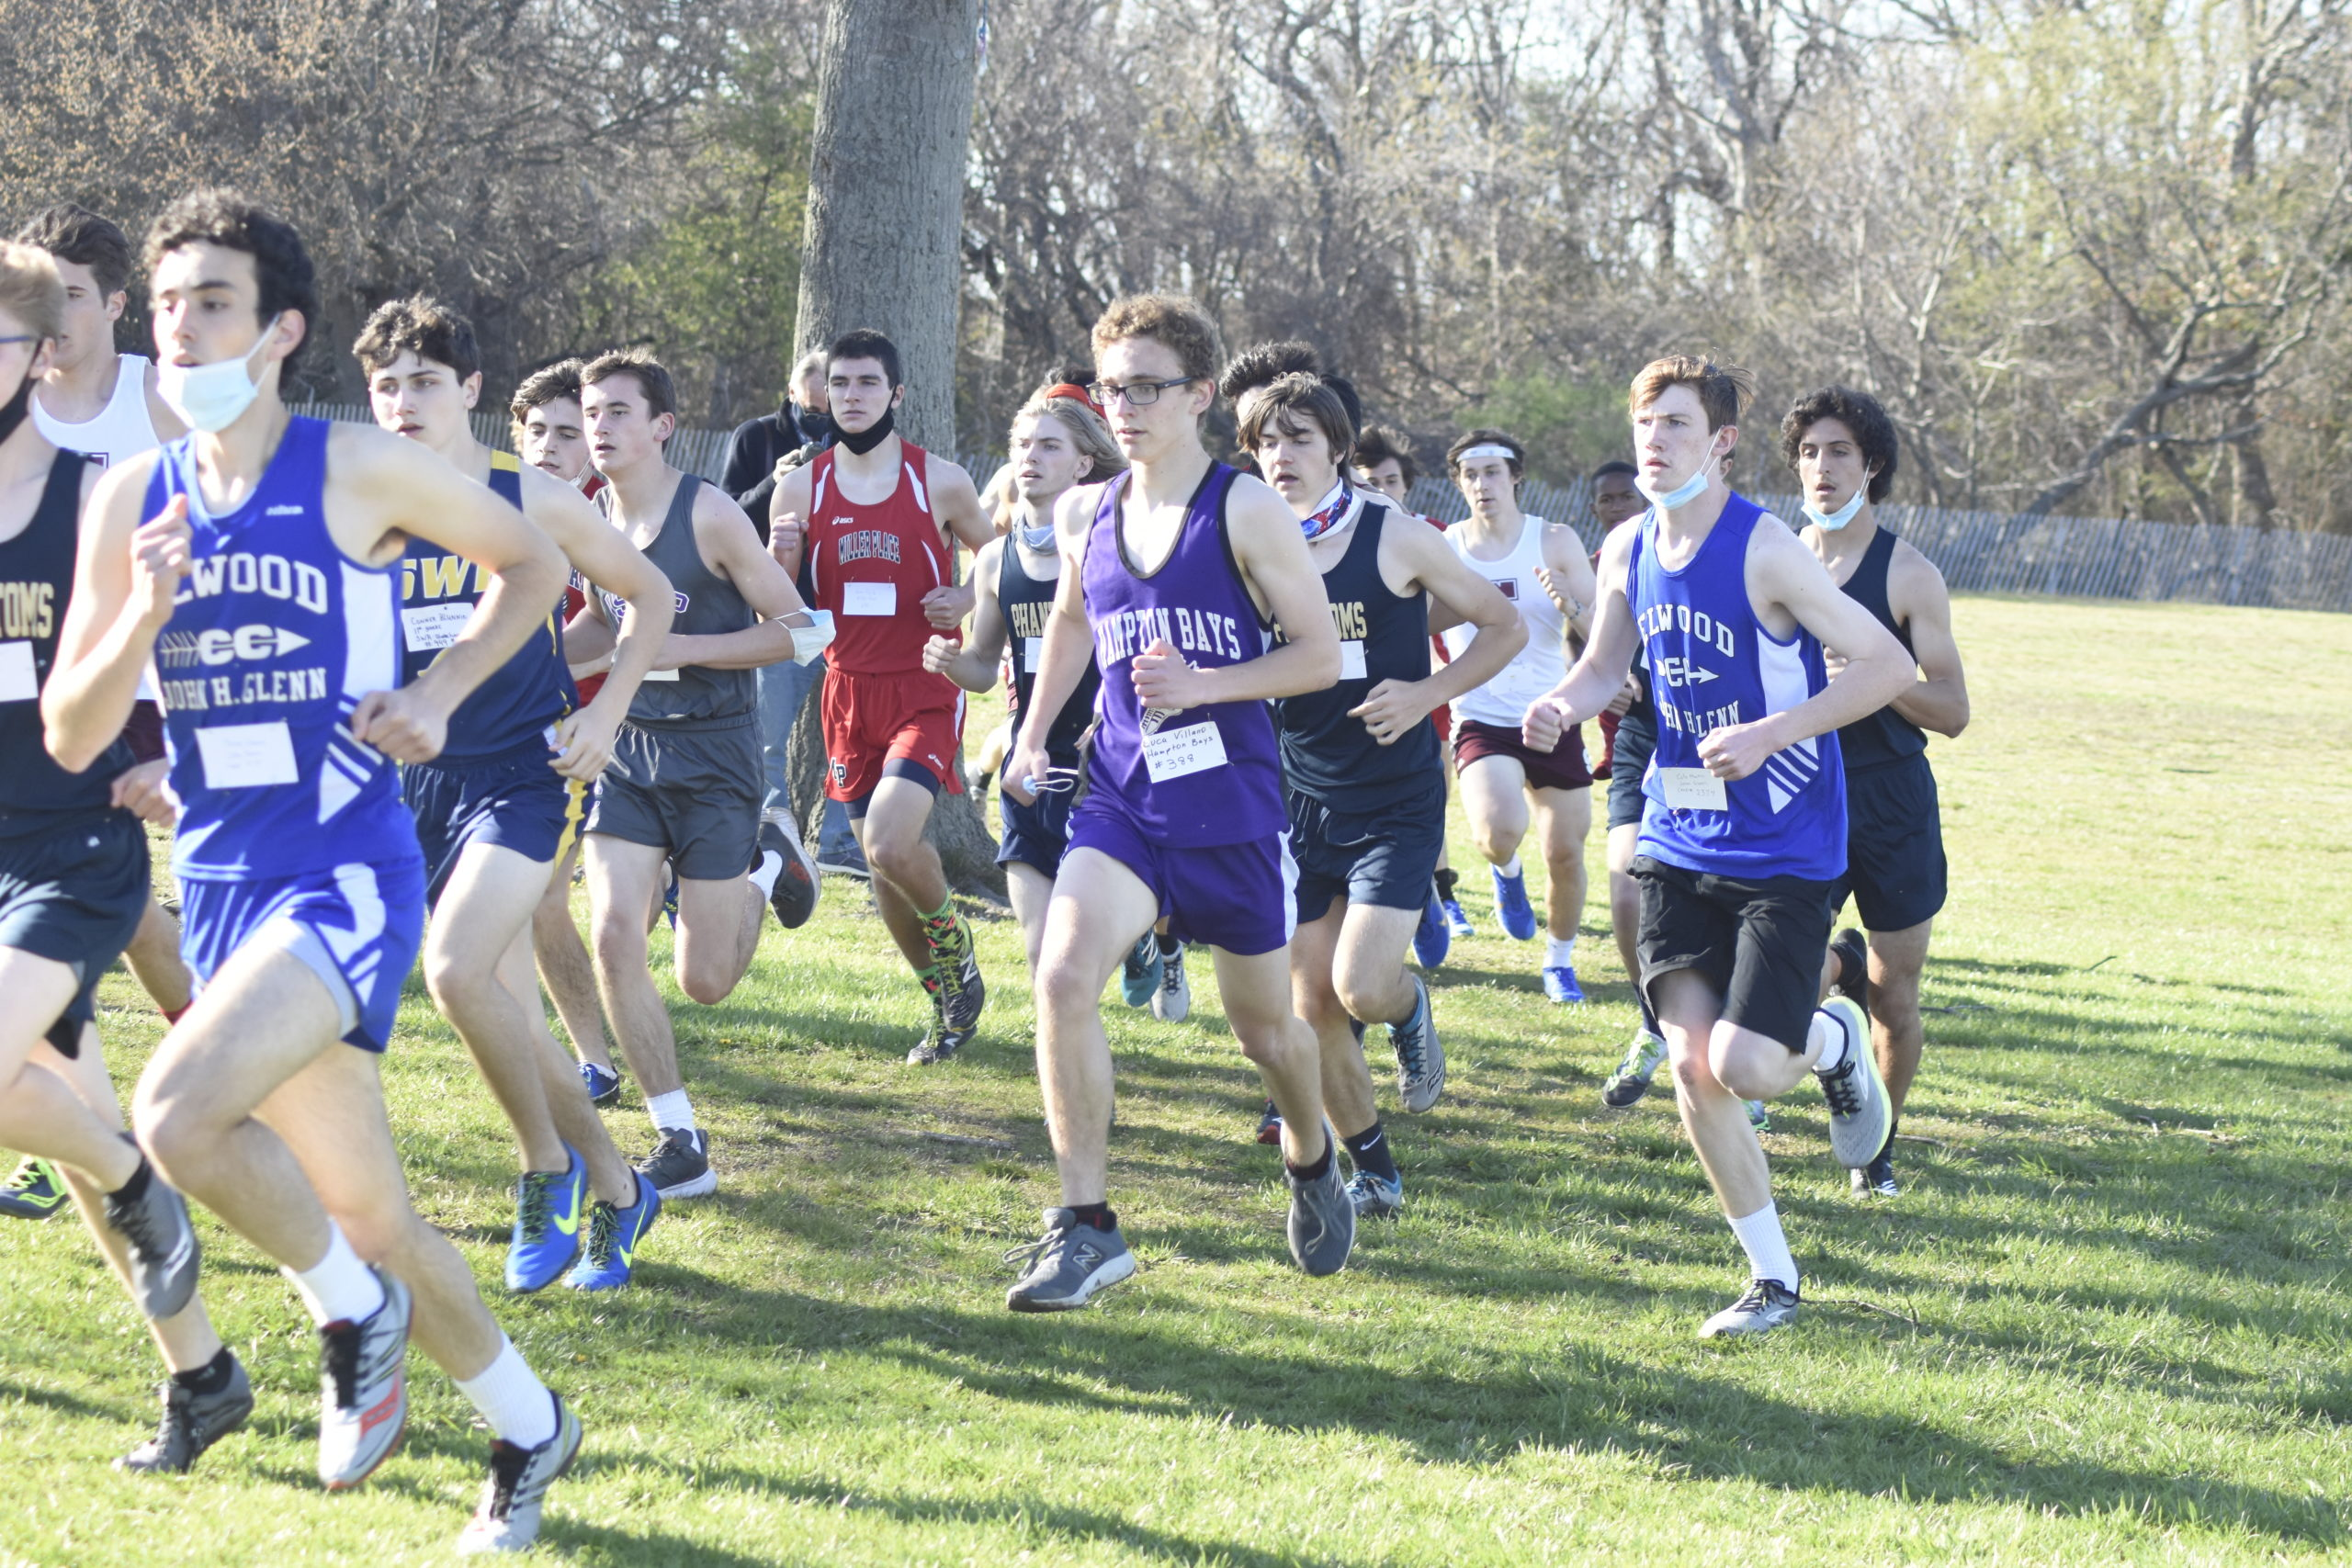 Luca Villano was the lone representative for Hampton Bays at Tuesday's Division IV race.